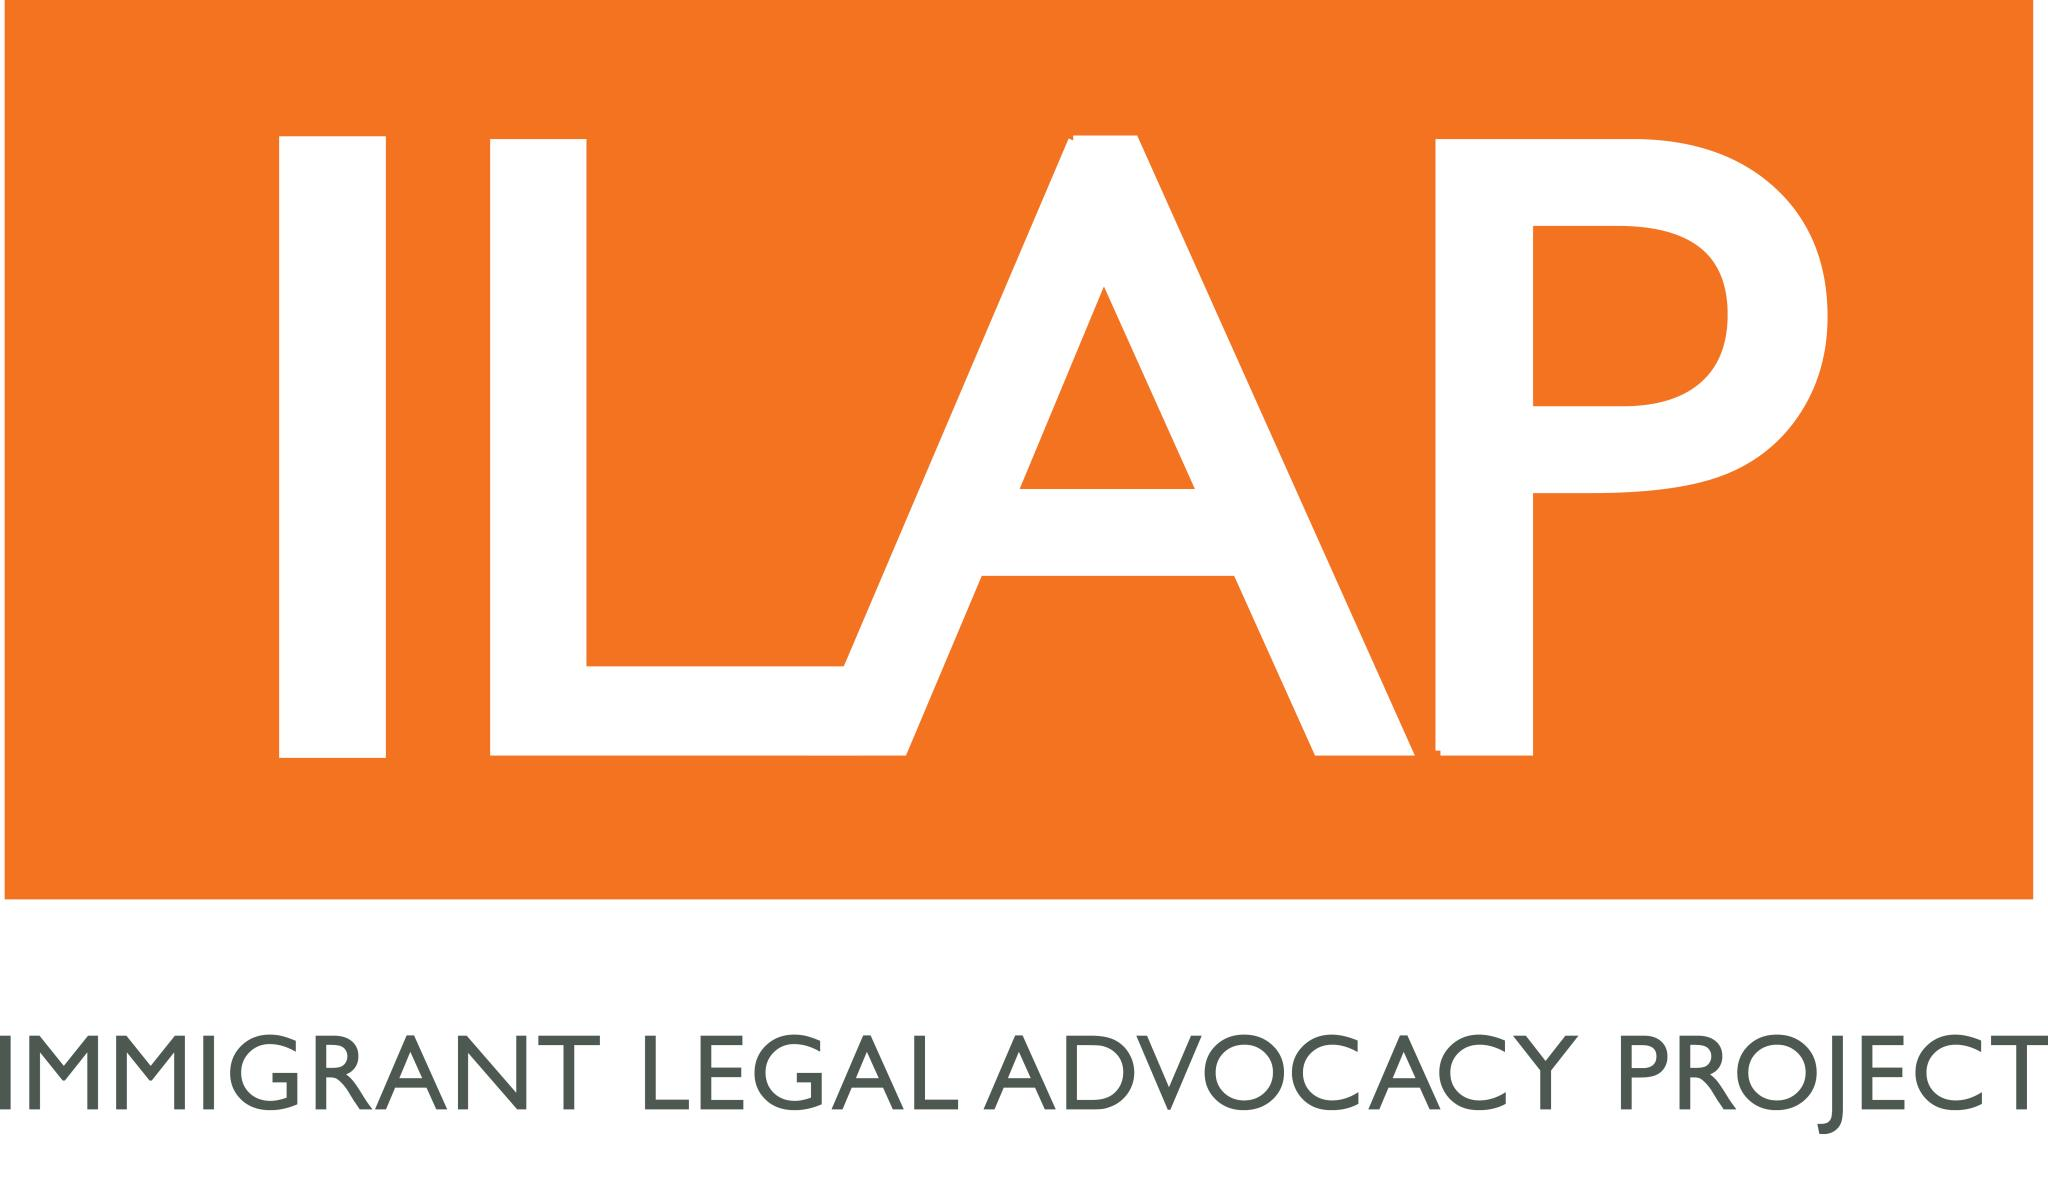 """ ILAP  helps Maine's immigrants keep their families together, gain protection from persecution and domestic violence, attain residency and work authorization, and become proud U.S. citizens."""